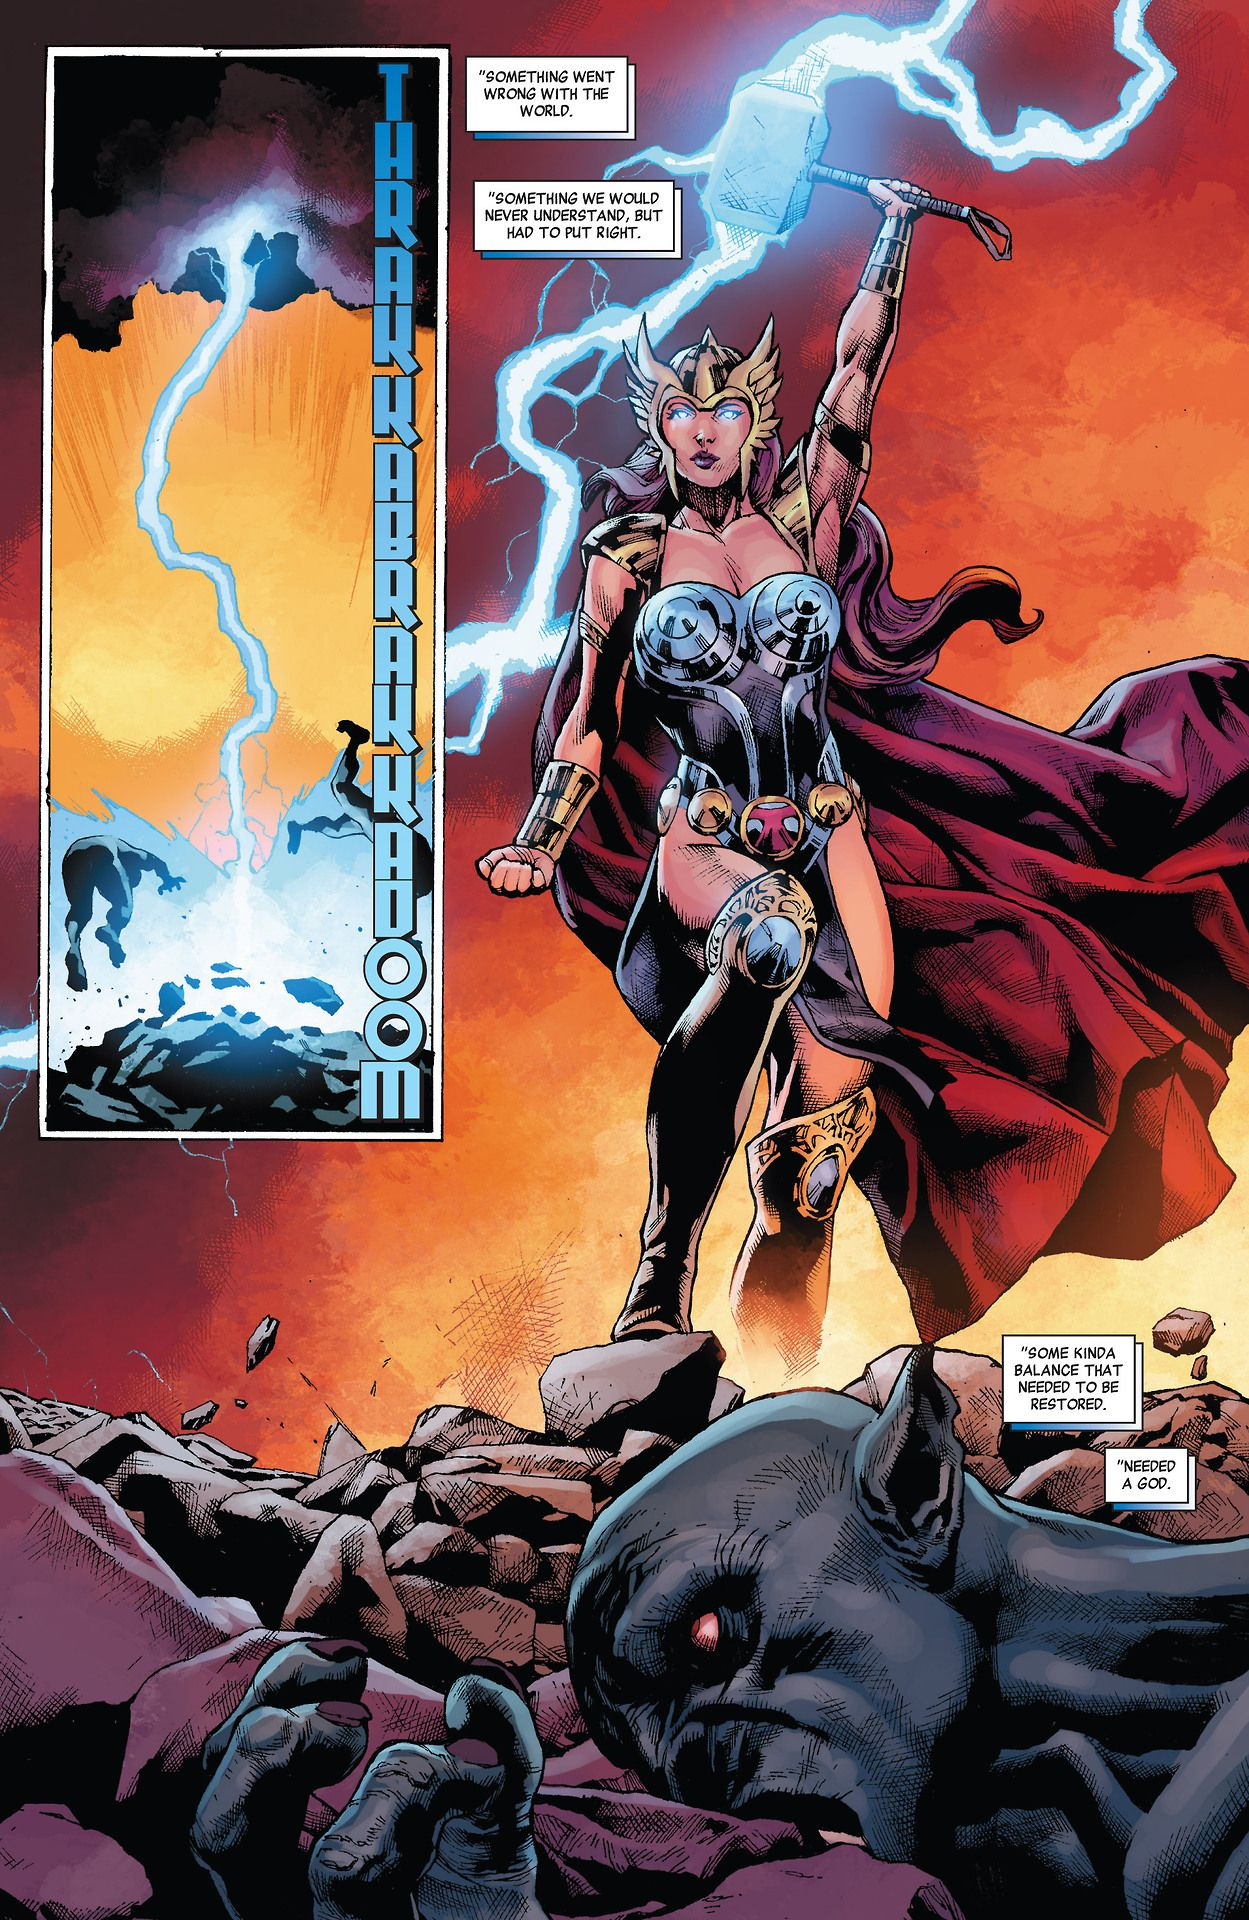 Natasha Romanoff Worthy of Lifting Mjolnir What If? Age of Ultron #3